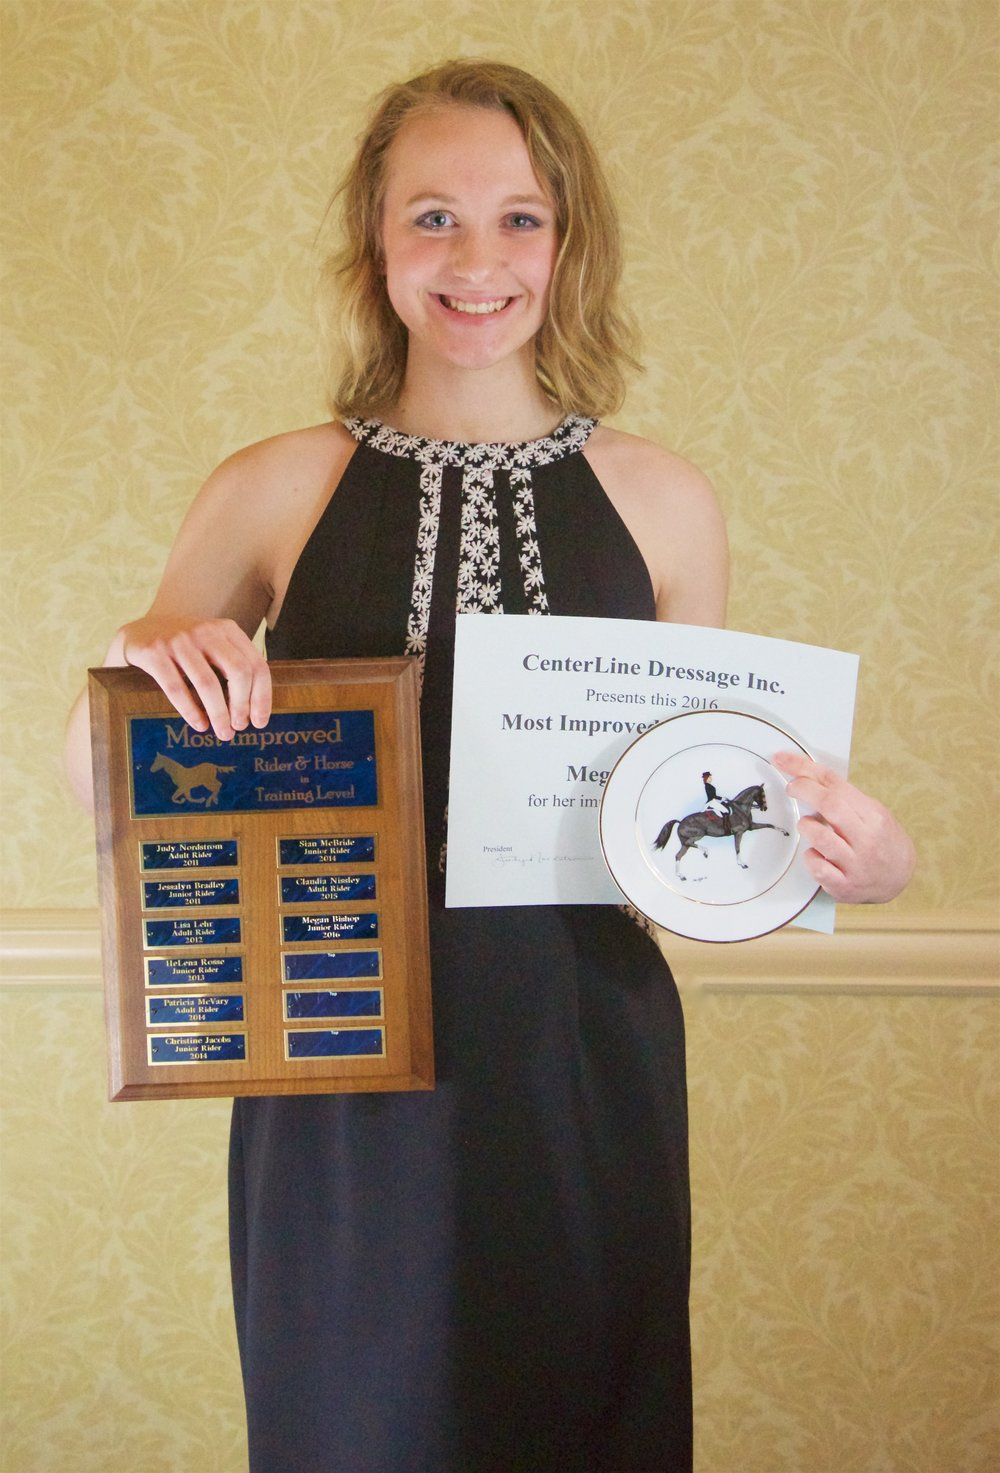 2016 Most Improved Rider of the Year at Training Level Megan Bishop